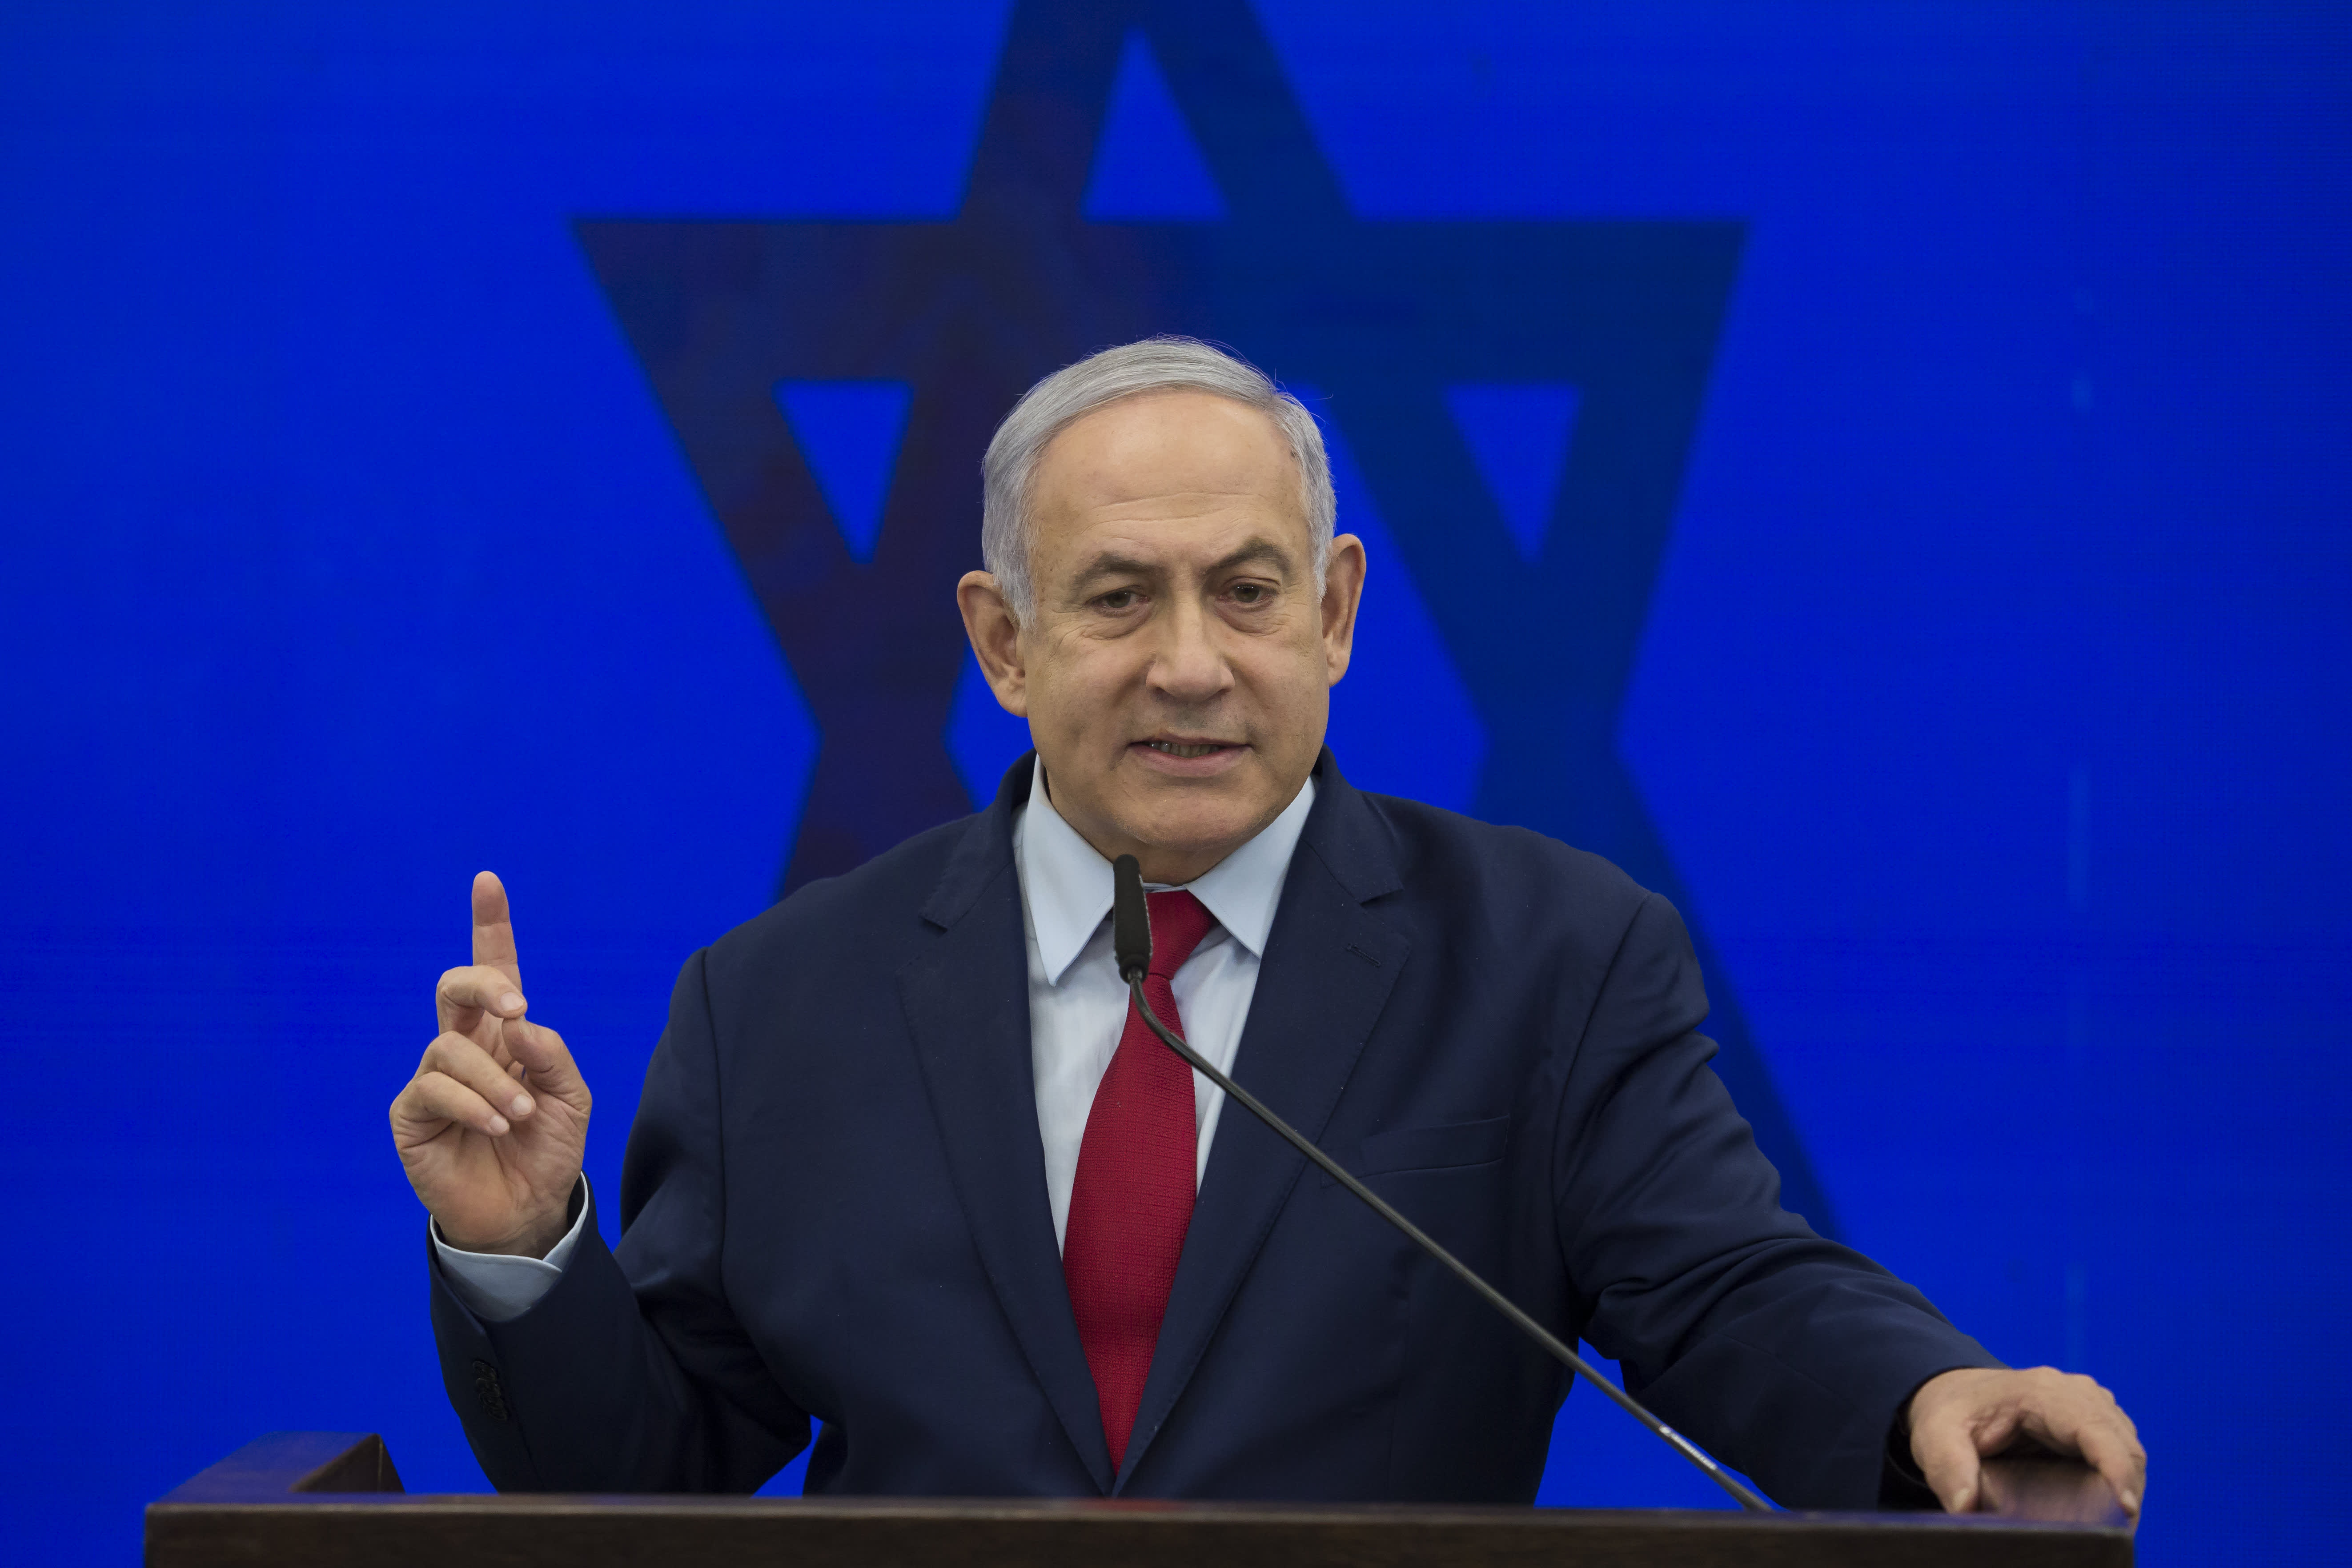 Israel's Netanyahu fights to hang on to power in second general election this year